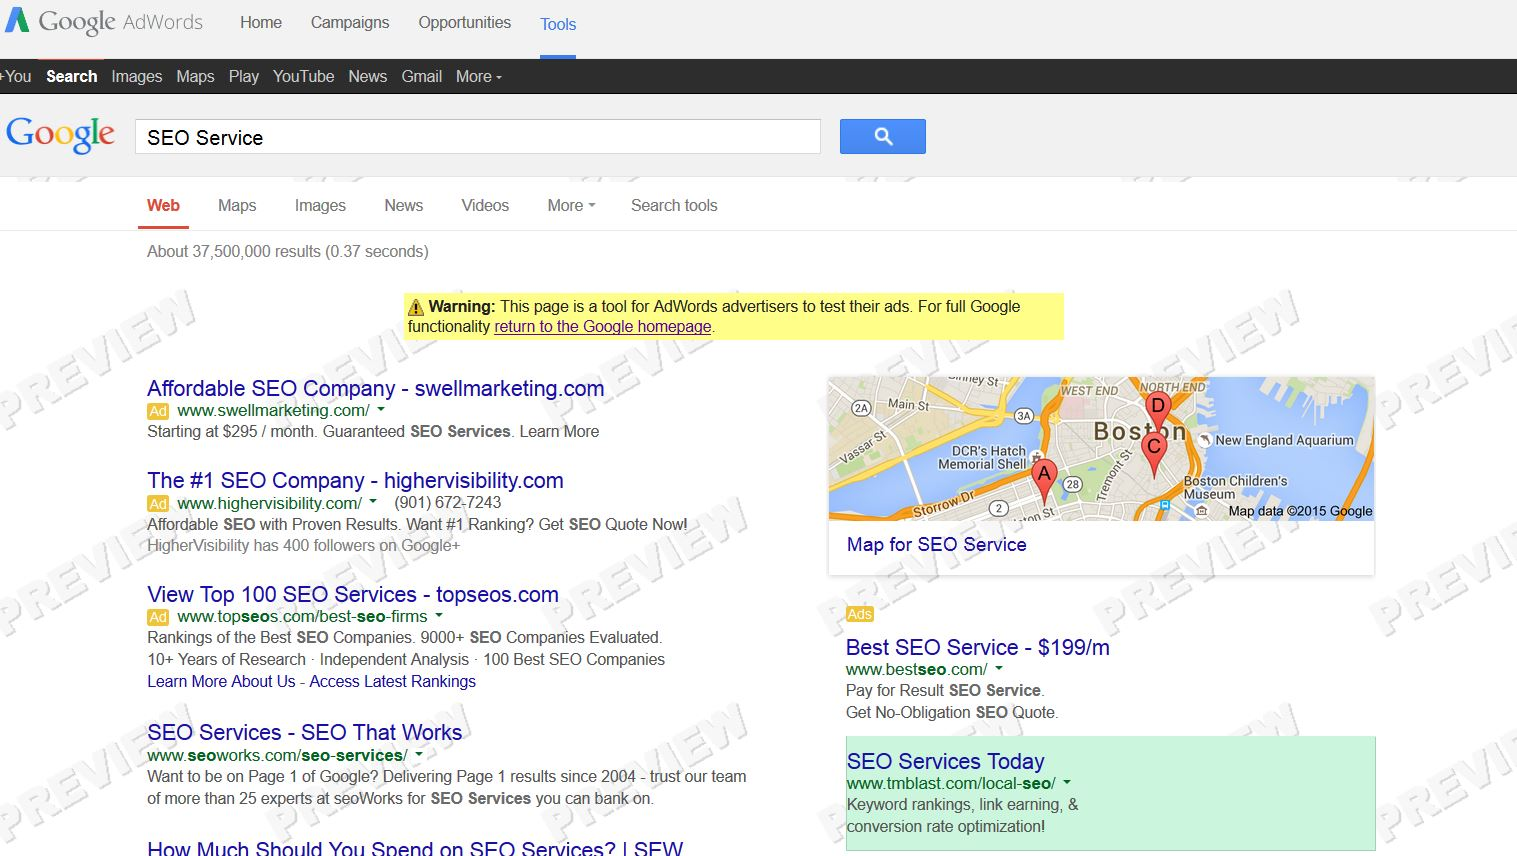 How to Preview an Ad in Google AdWords